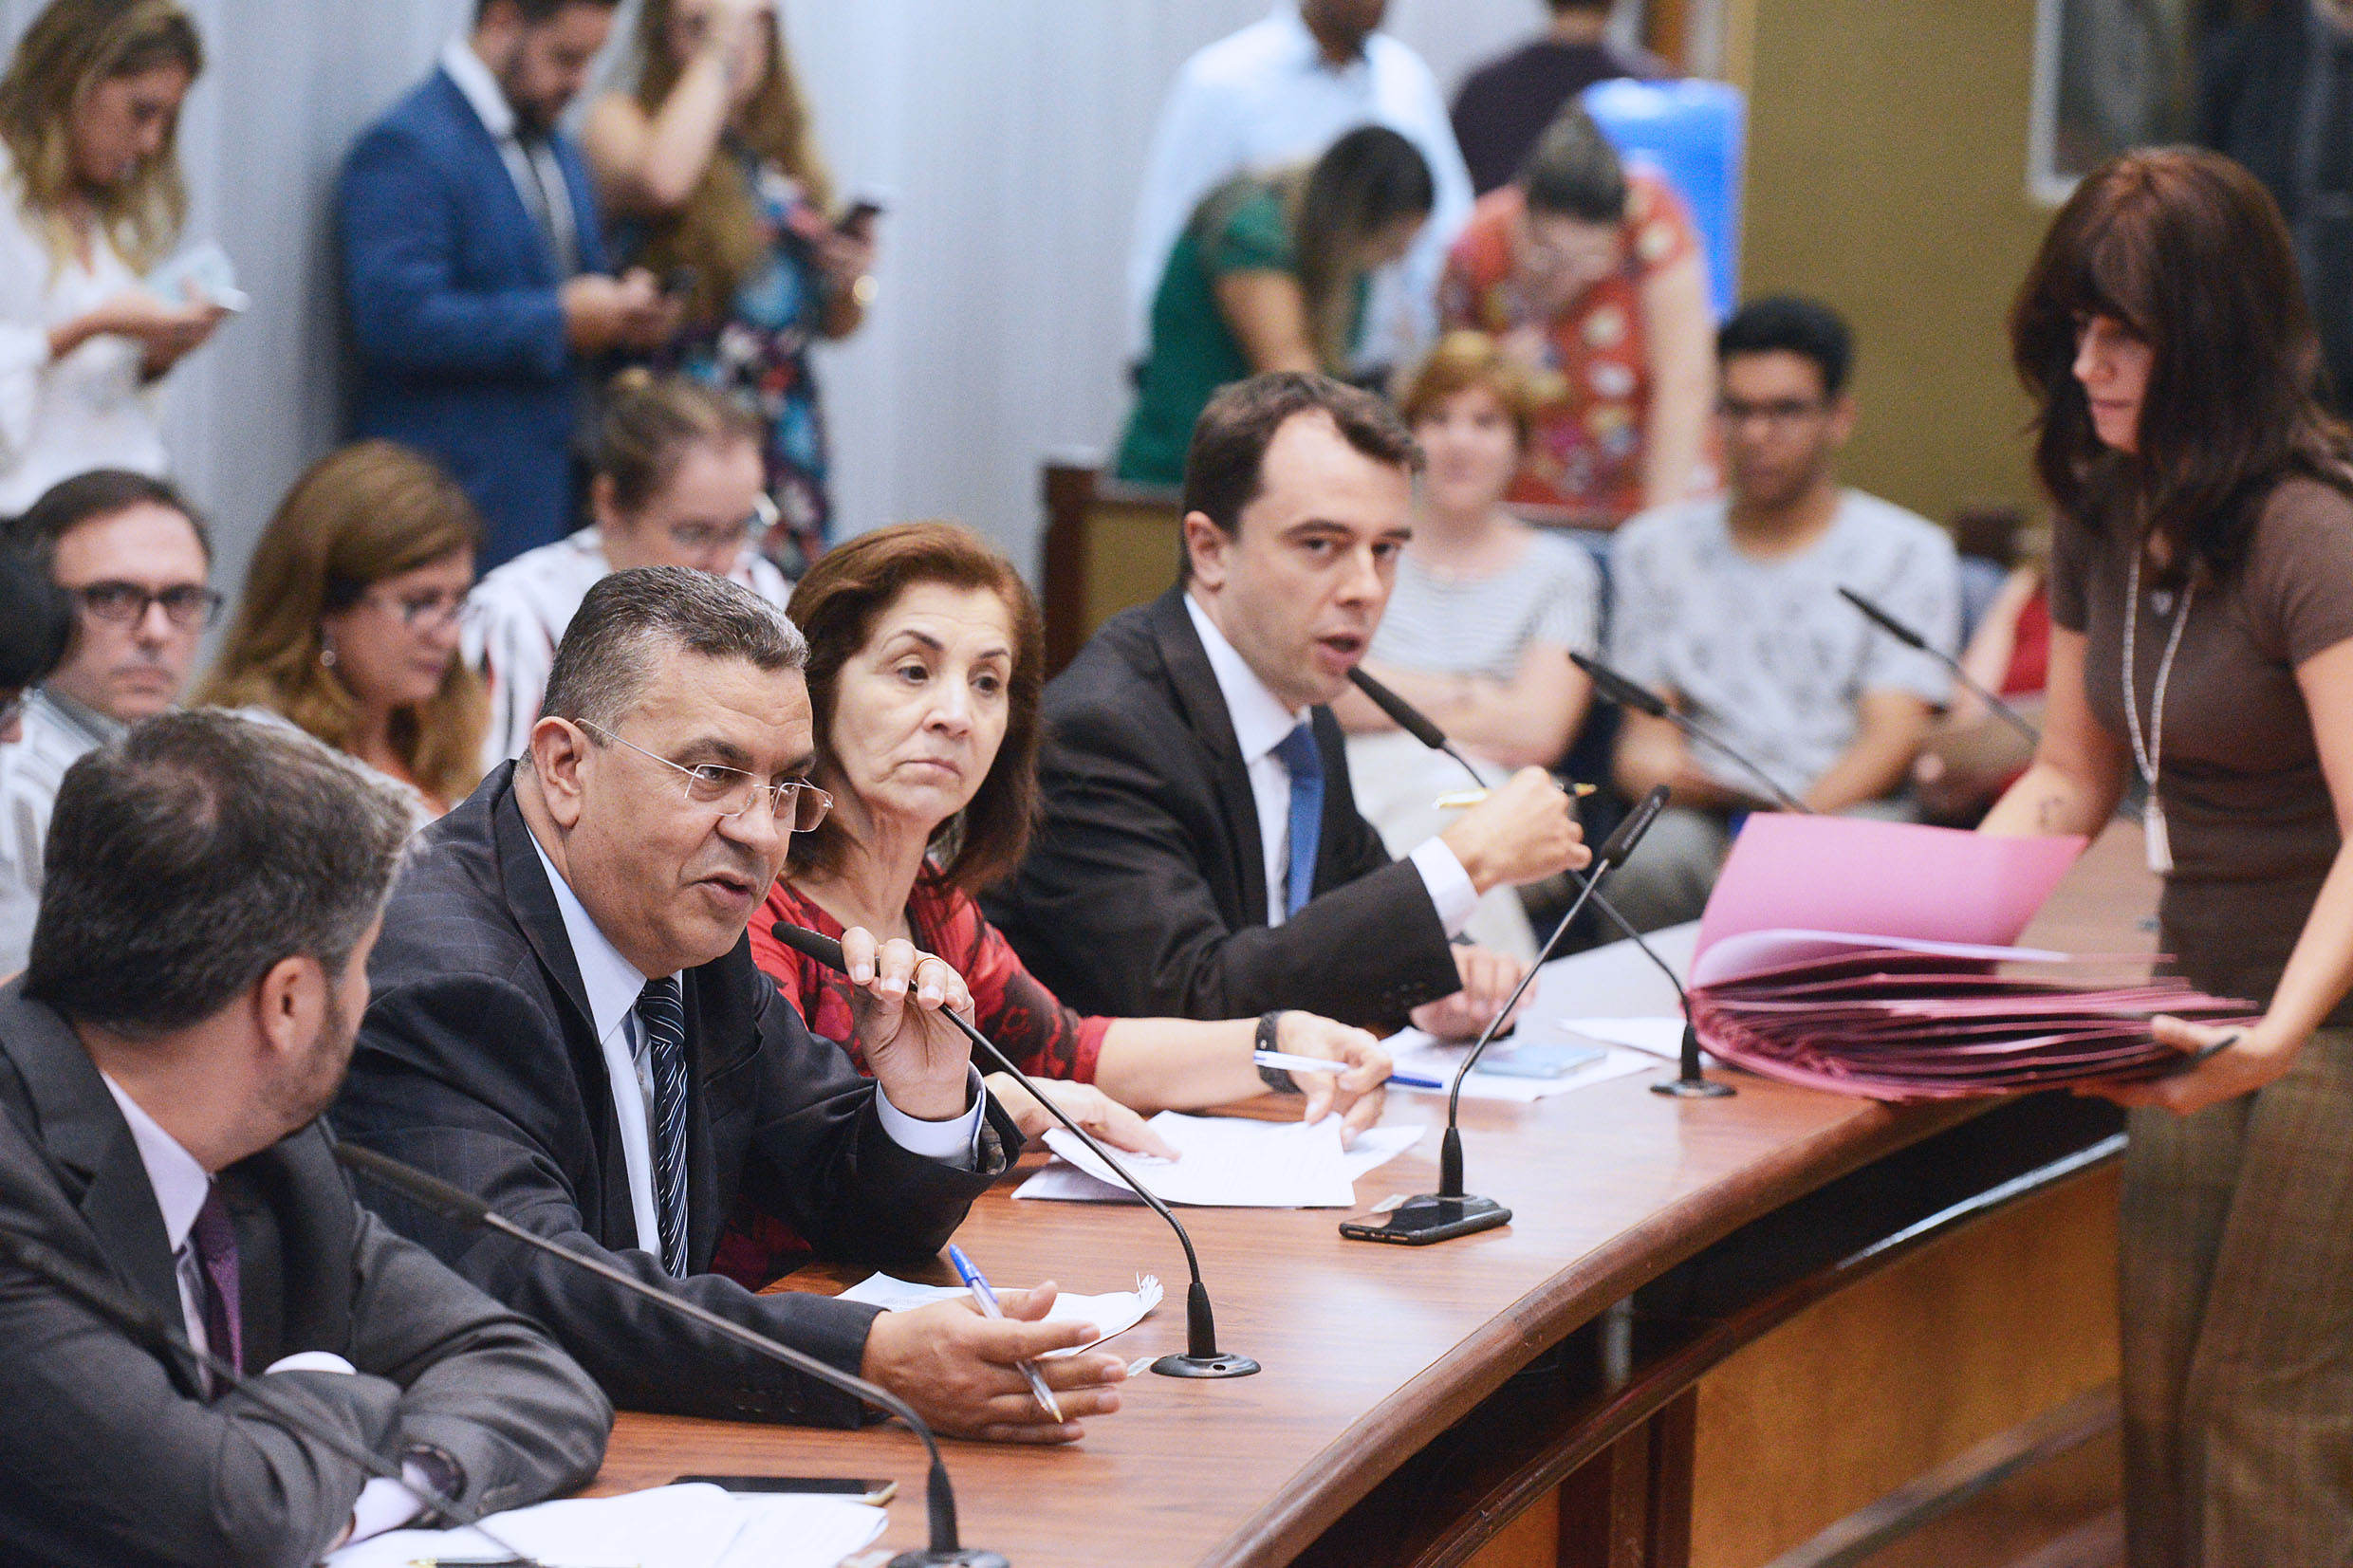 Parlamentares na comissão <a style='float:right' href='https://www3.al.sp.gov.br/repositorio/noticia/N-03-2019/fg231081.jpg' target=_blank><img src='/_img/material-file-download-white.png' width='14px' alt='Clique para baixar a imagem'></a>